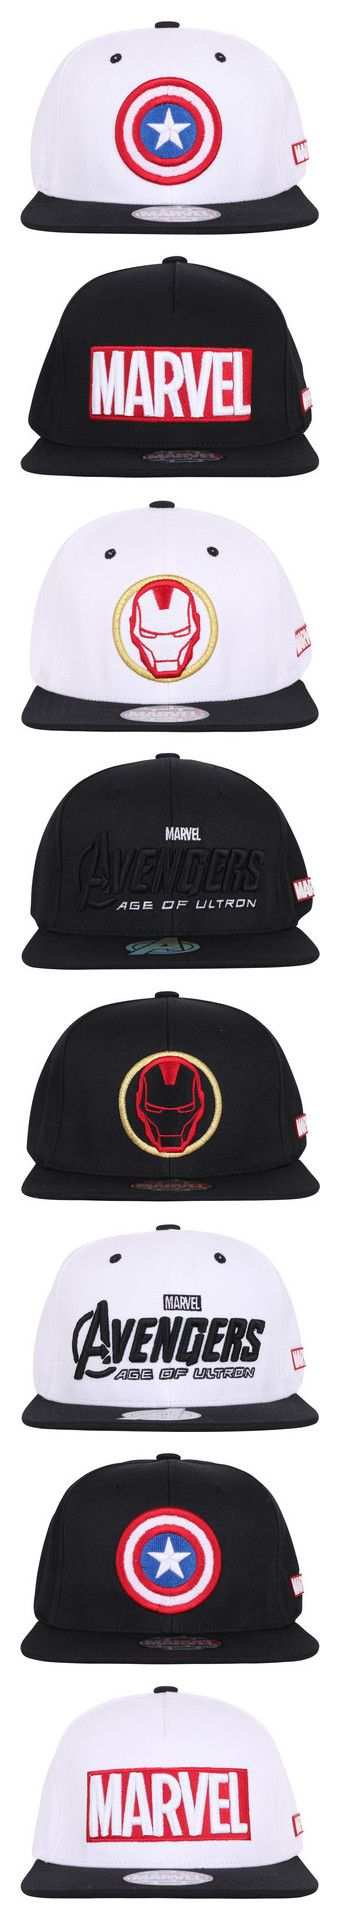 """ililily Marvel Comics New Era Style Snapback Hat Baseball Cap Collection"" by ililily ❤ liked on Polyvore"